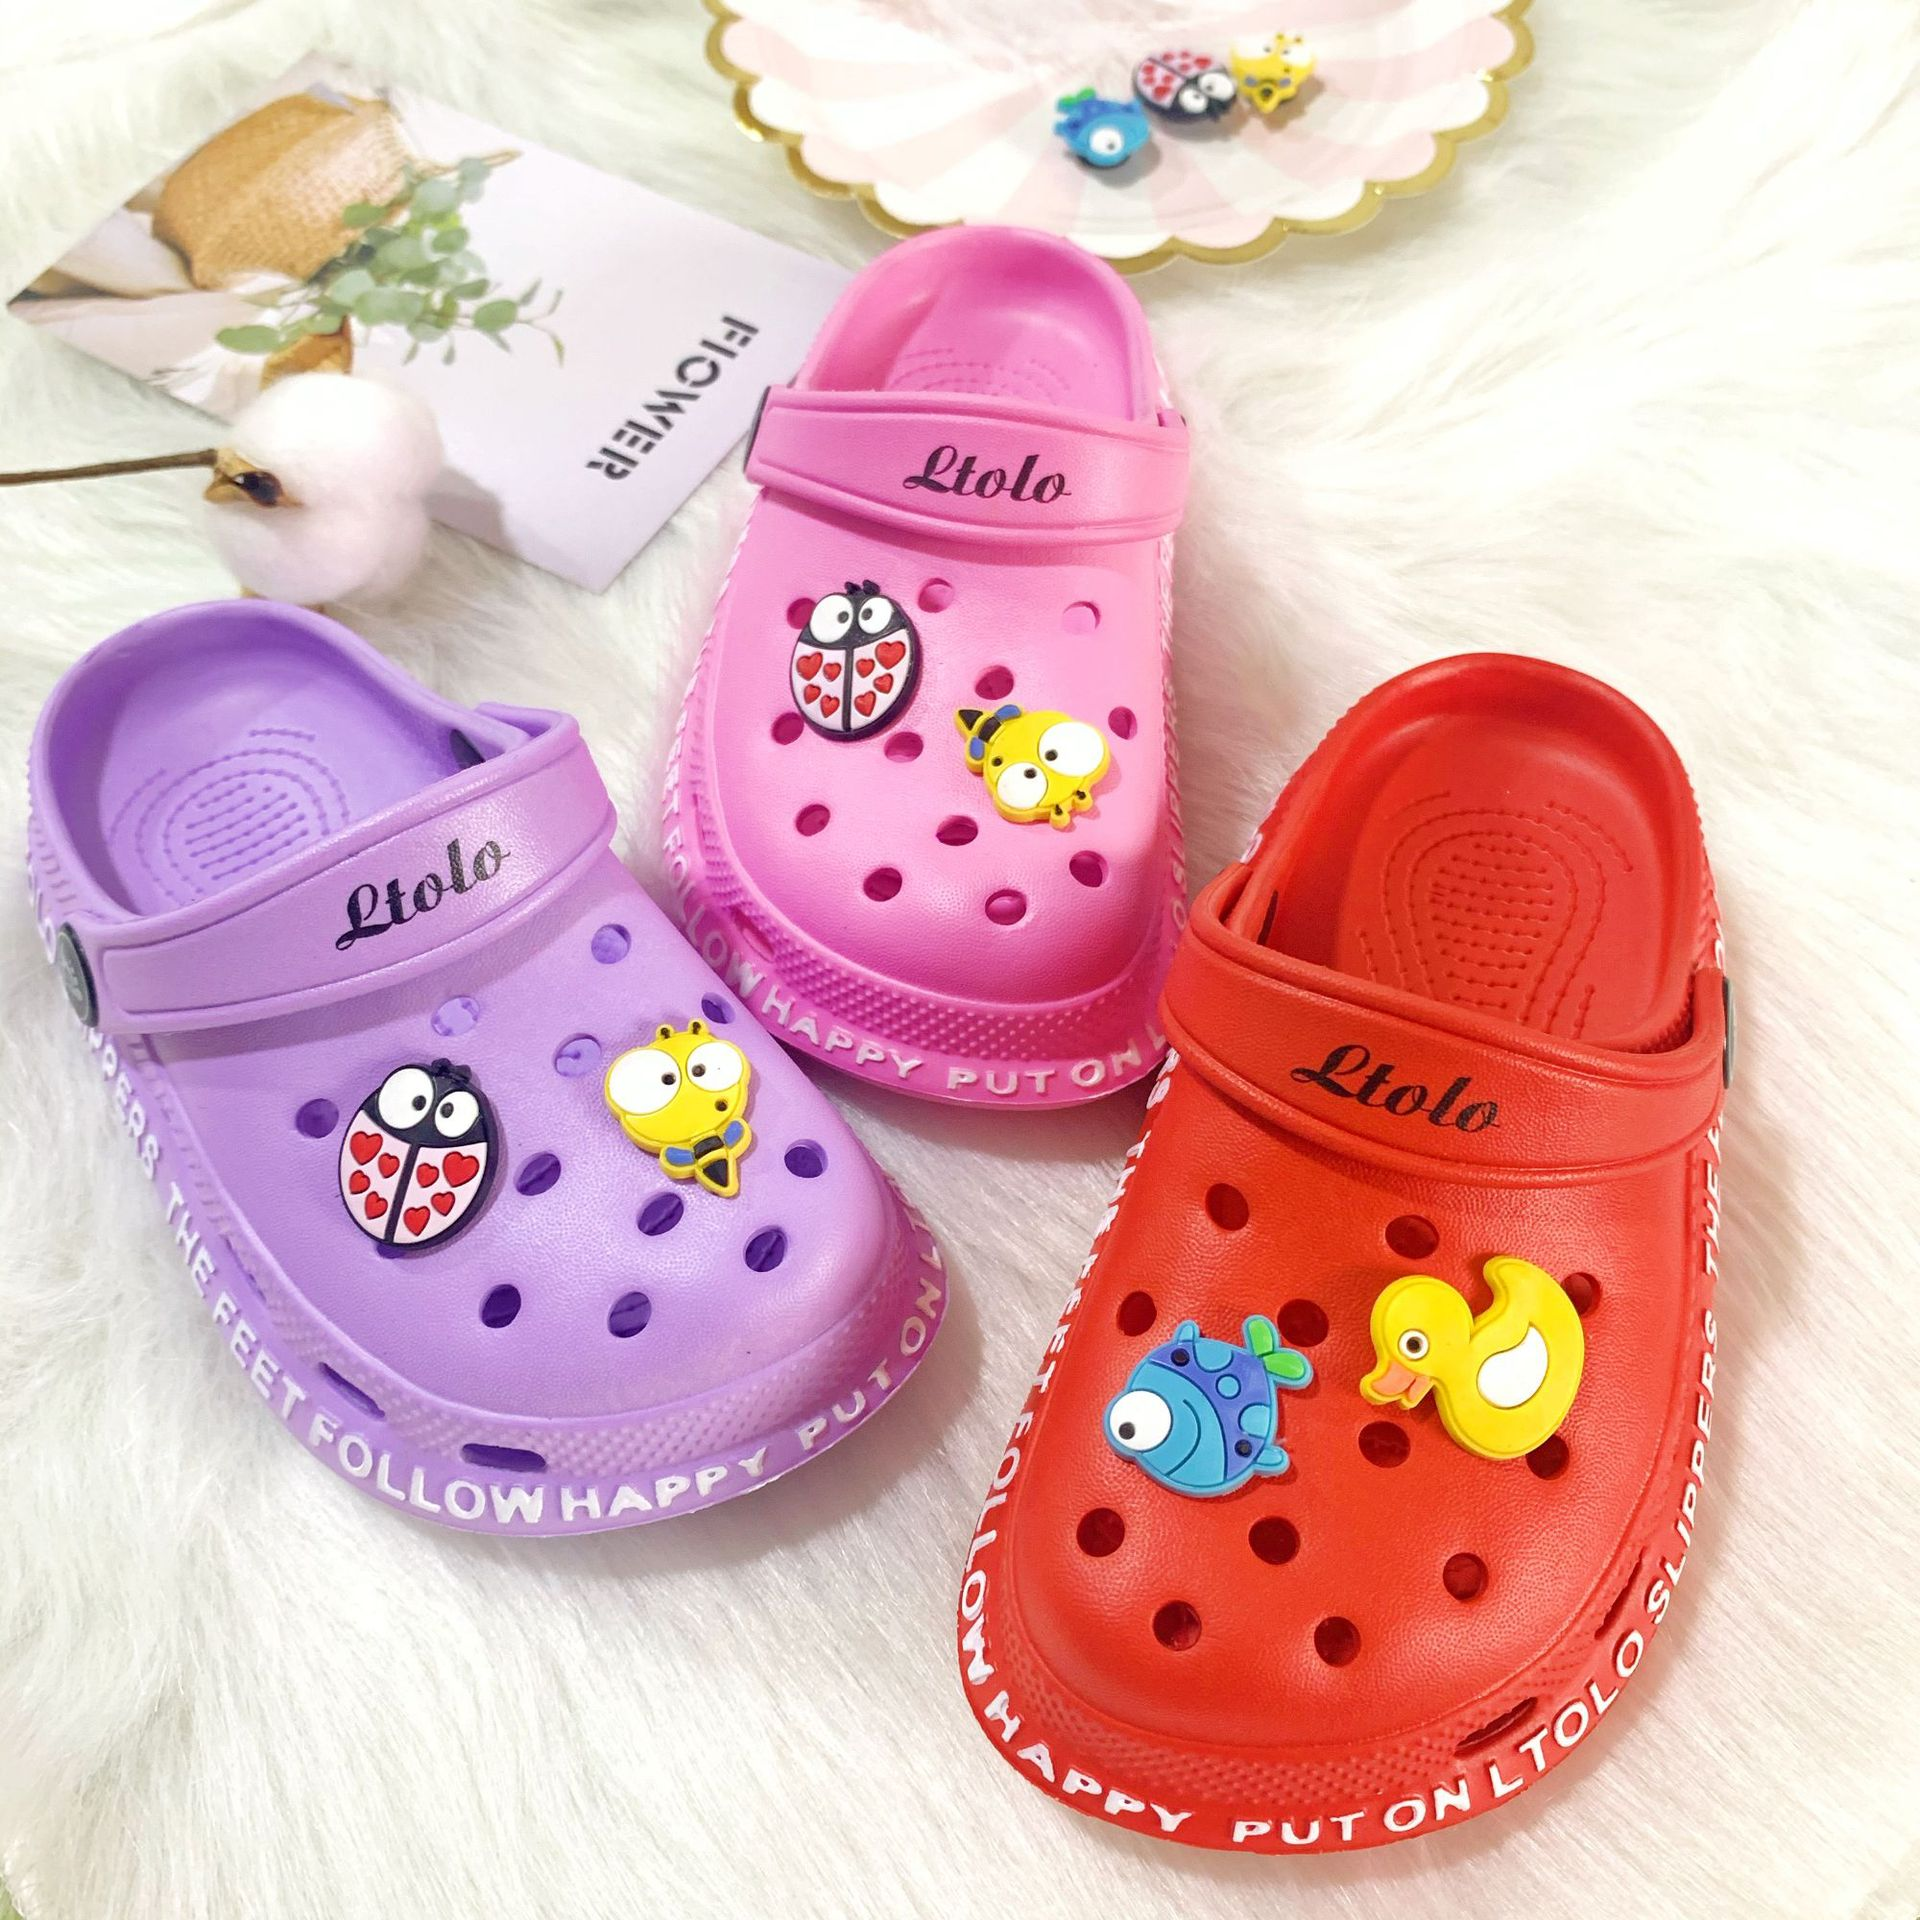 GIRL BABY KIDS SUMMER TODDLERS CAVE SHOES MULES CROC CHILDREN BEACH SANDALS SLIPPERS FOR GIRLS23 24 25 26 27 28 2 30 31 32 33 34